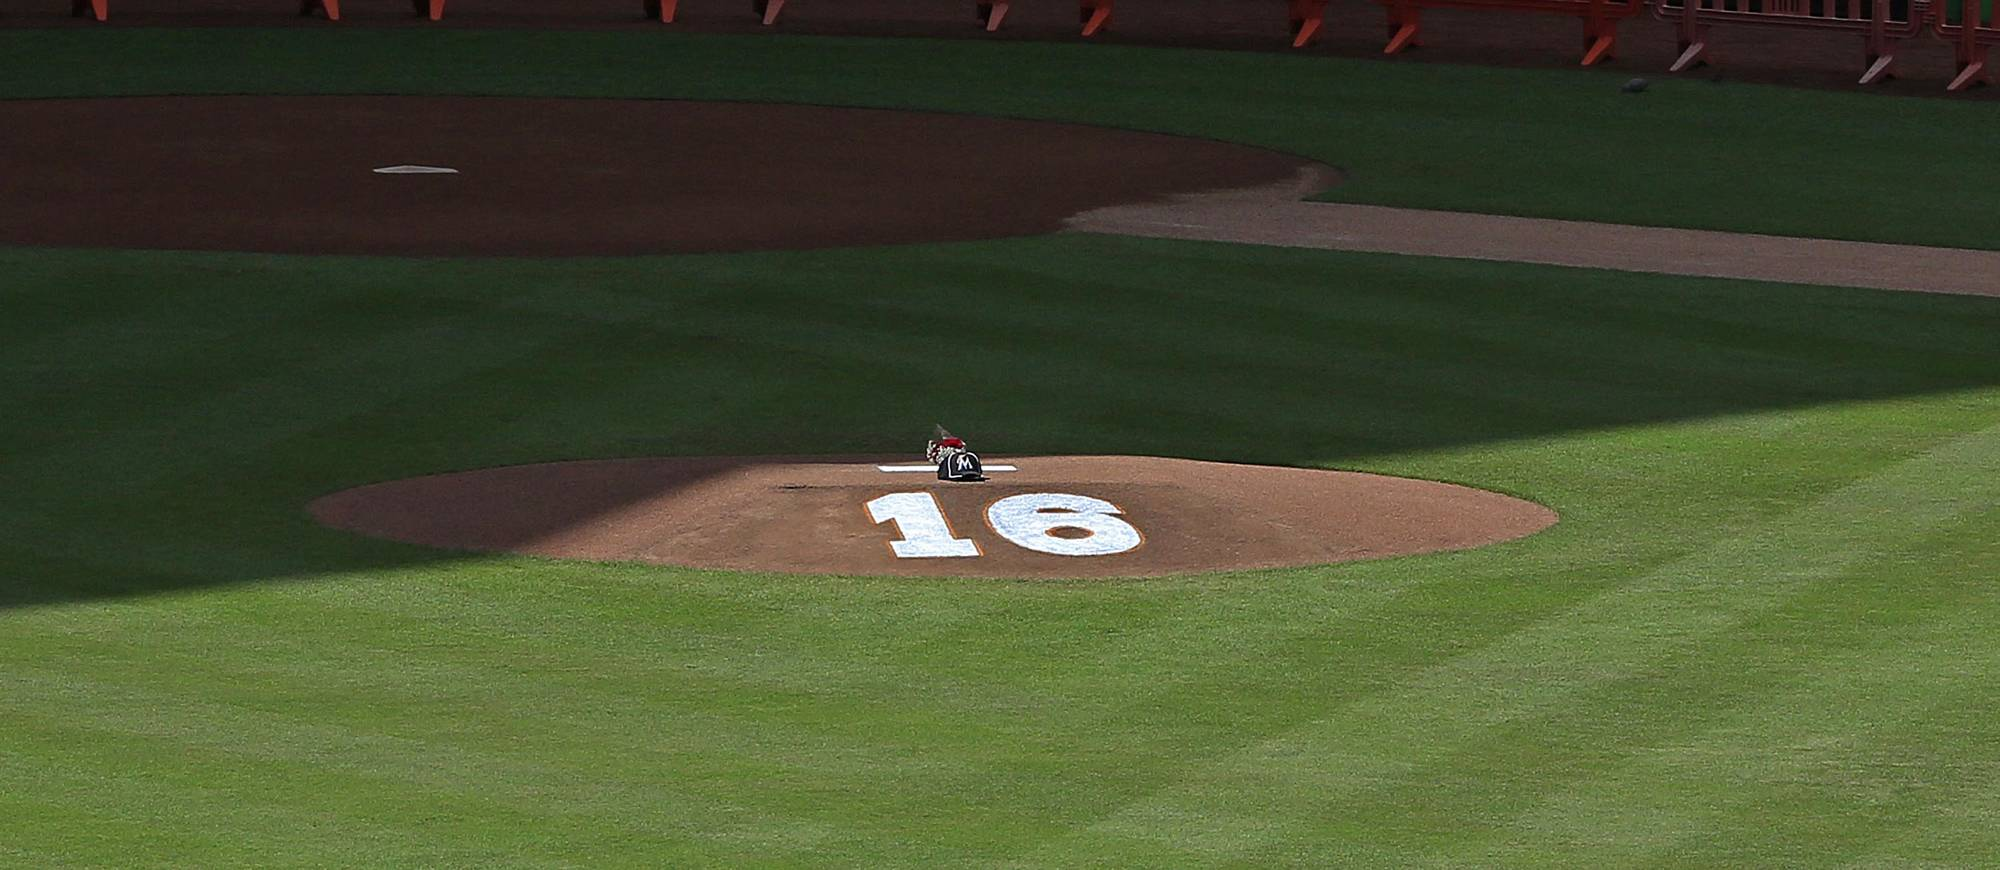 Can Marlins Recover From Jose Fernandez's Death?